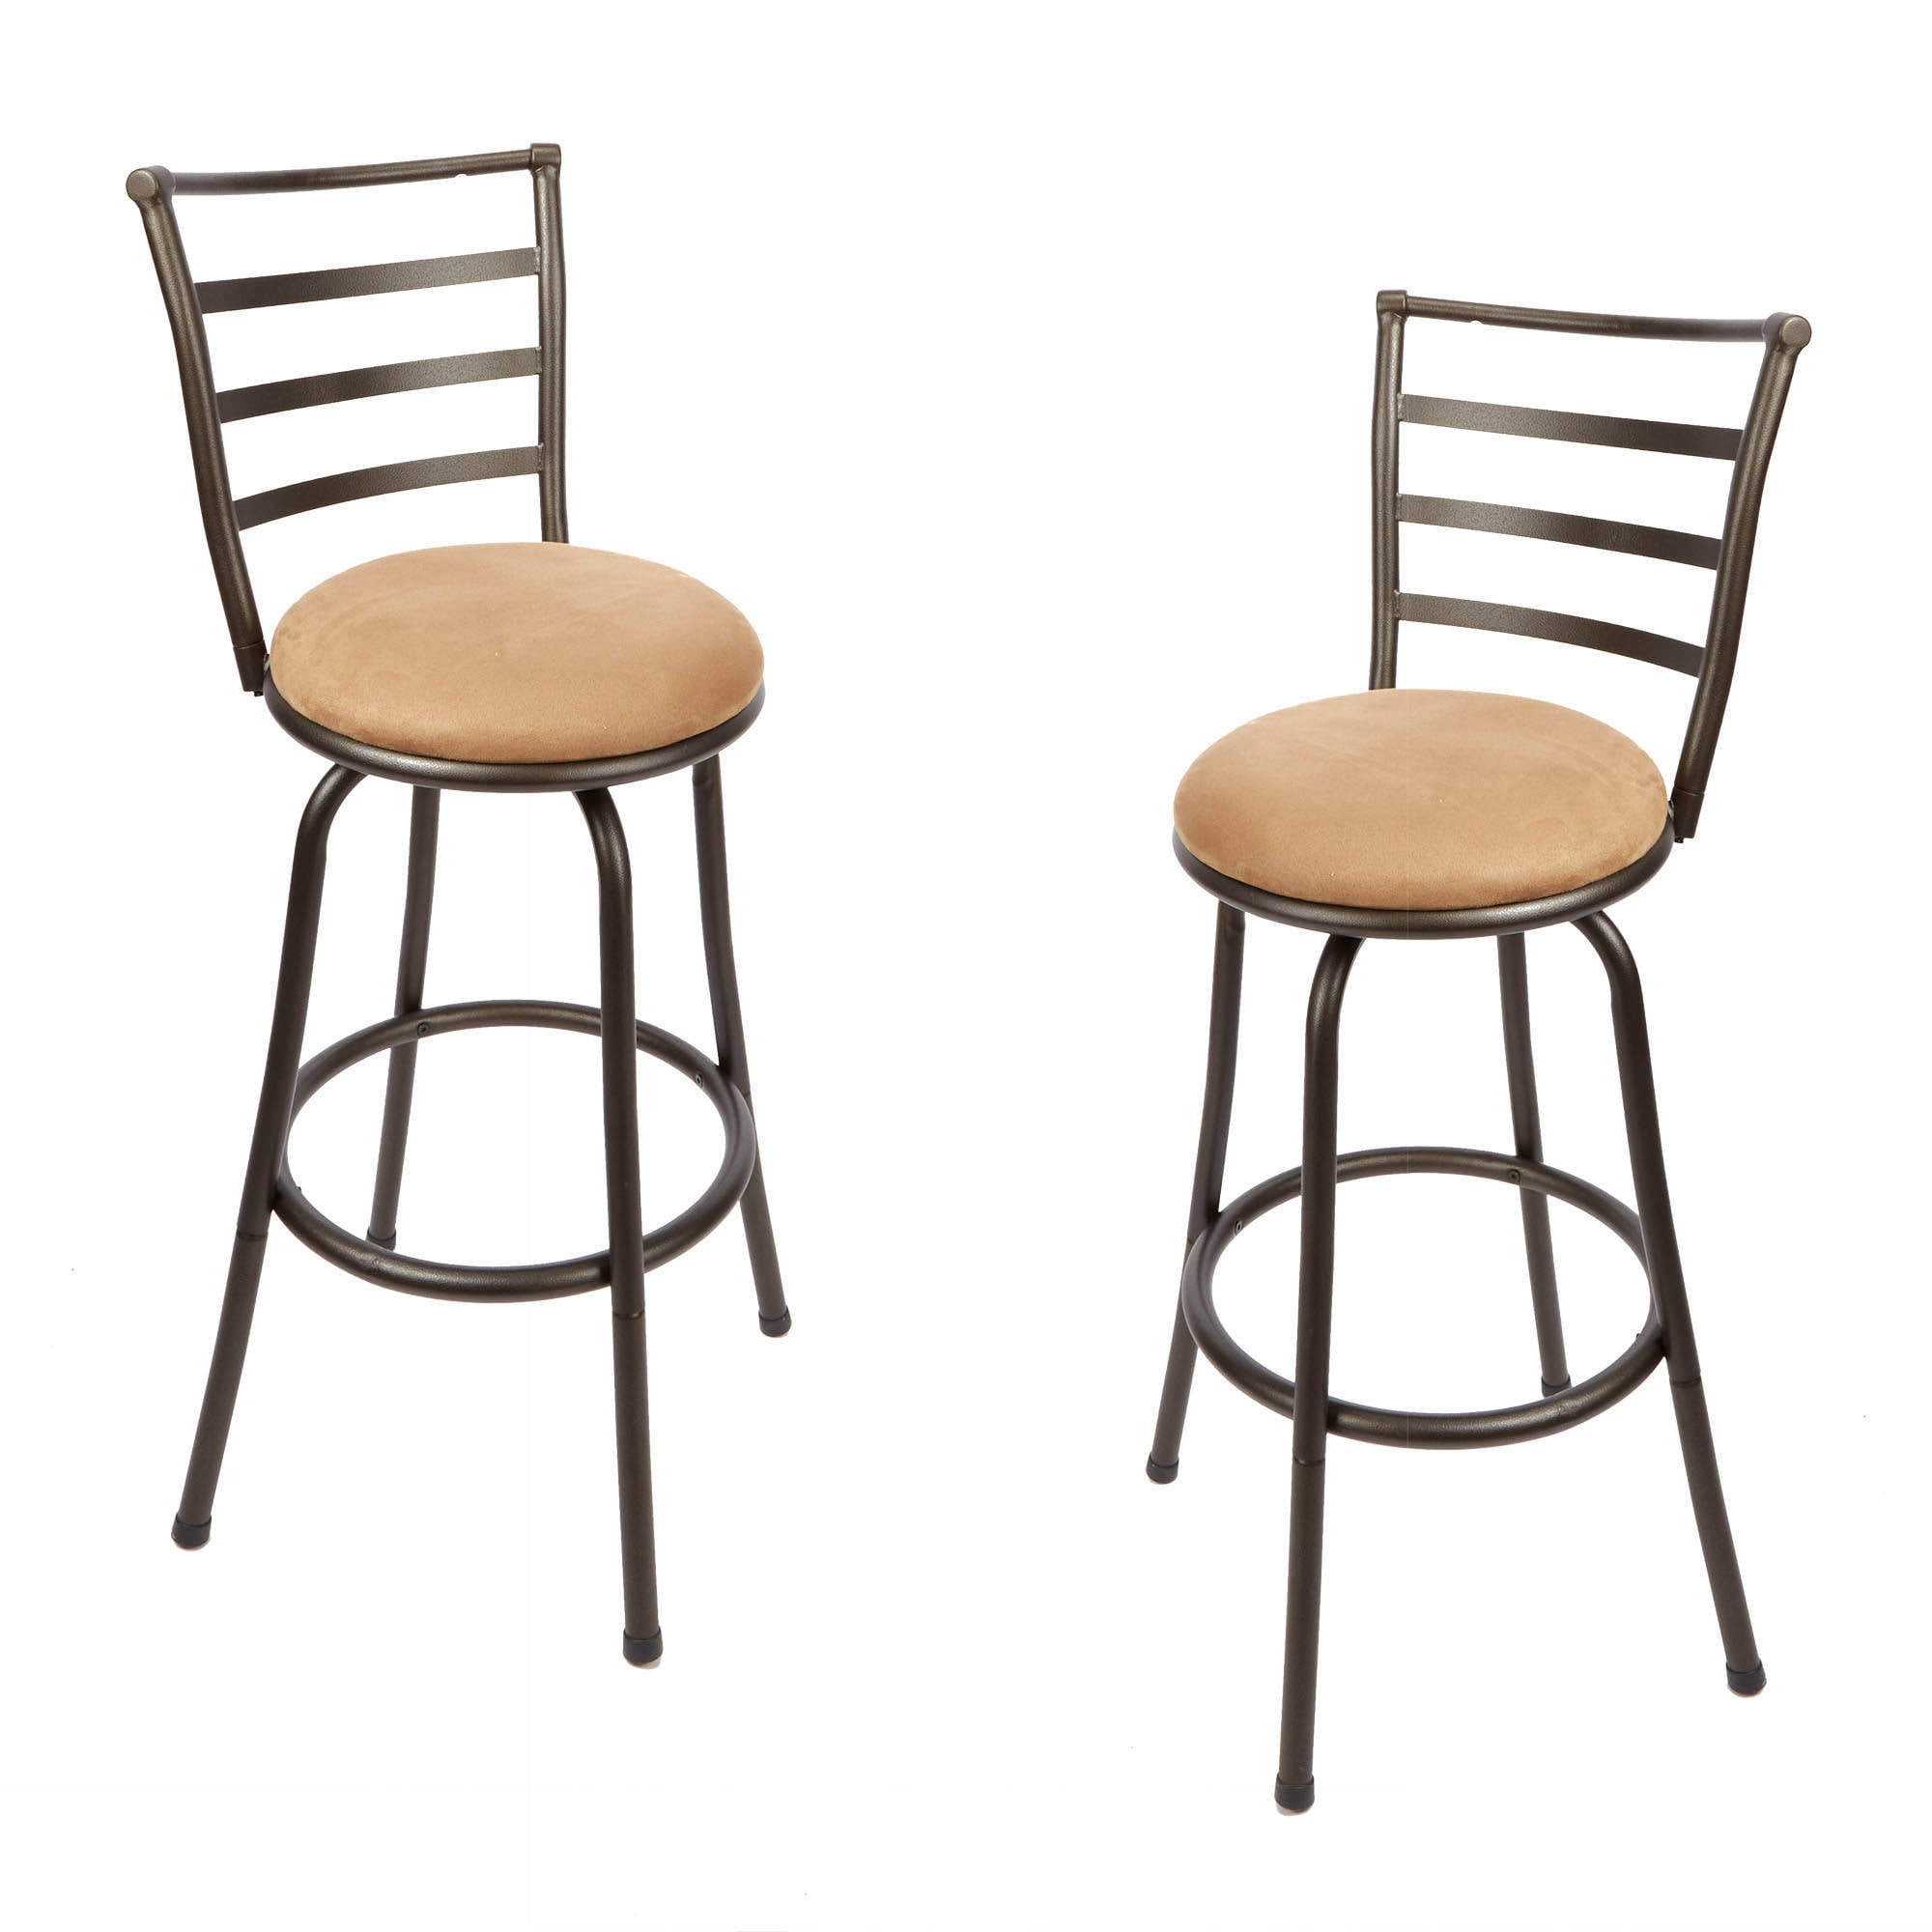 Mainstays Adjustable Height Barstool Hammered Bronze Finish Set Of 2 Walmart Com Walmart Com